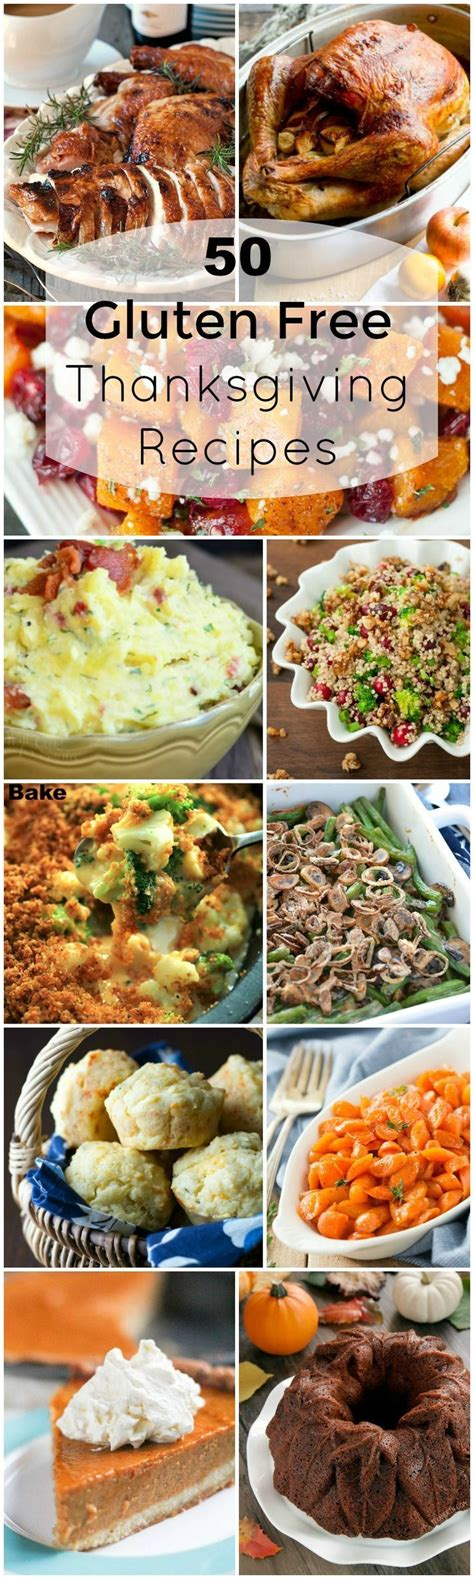 25 most pinned side dish recipes for thanksgiving and best 25 recipes for thanksgiving ideas on pinterest